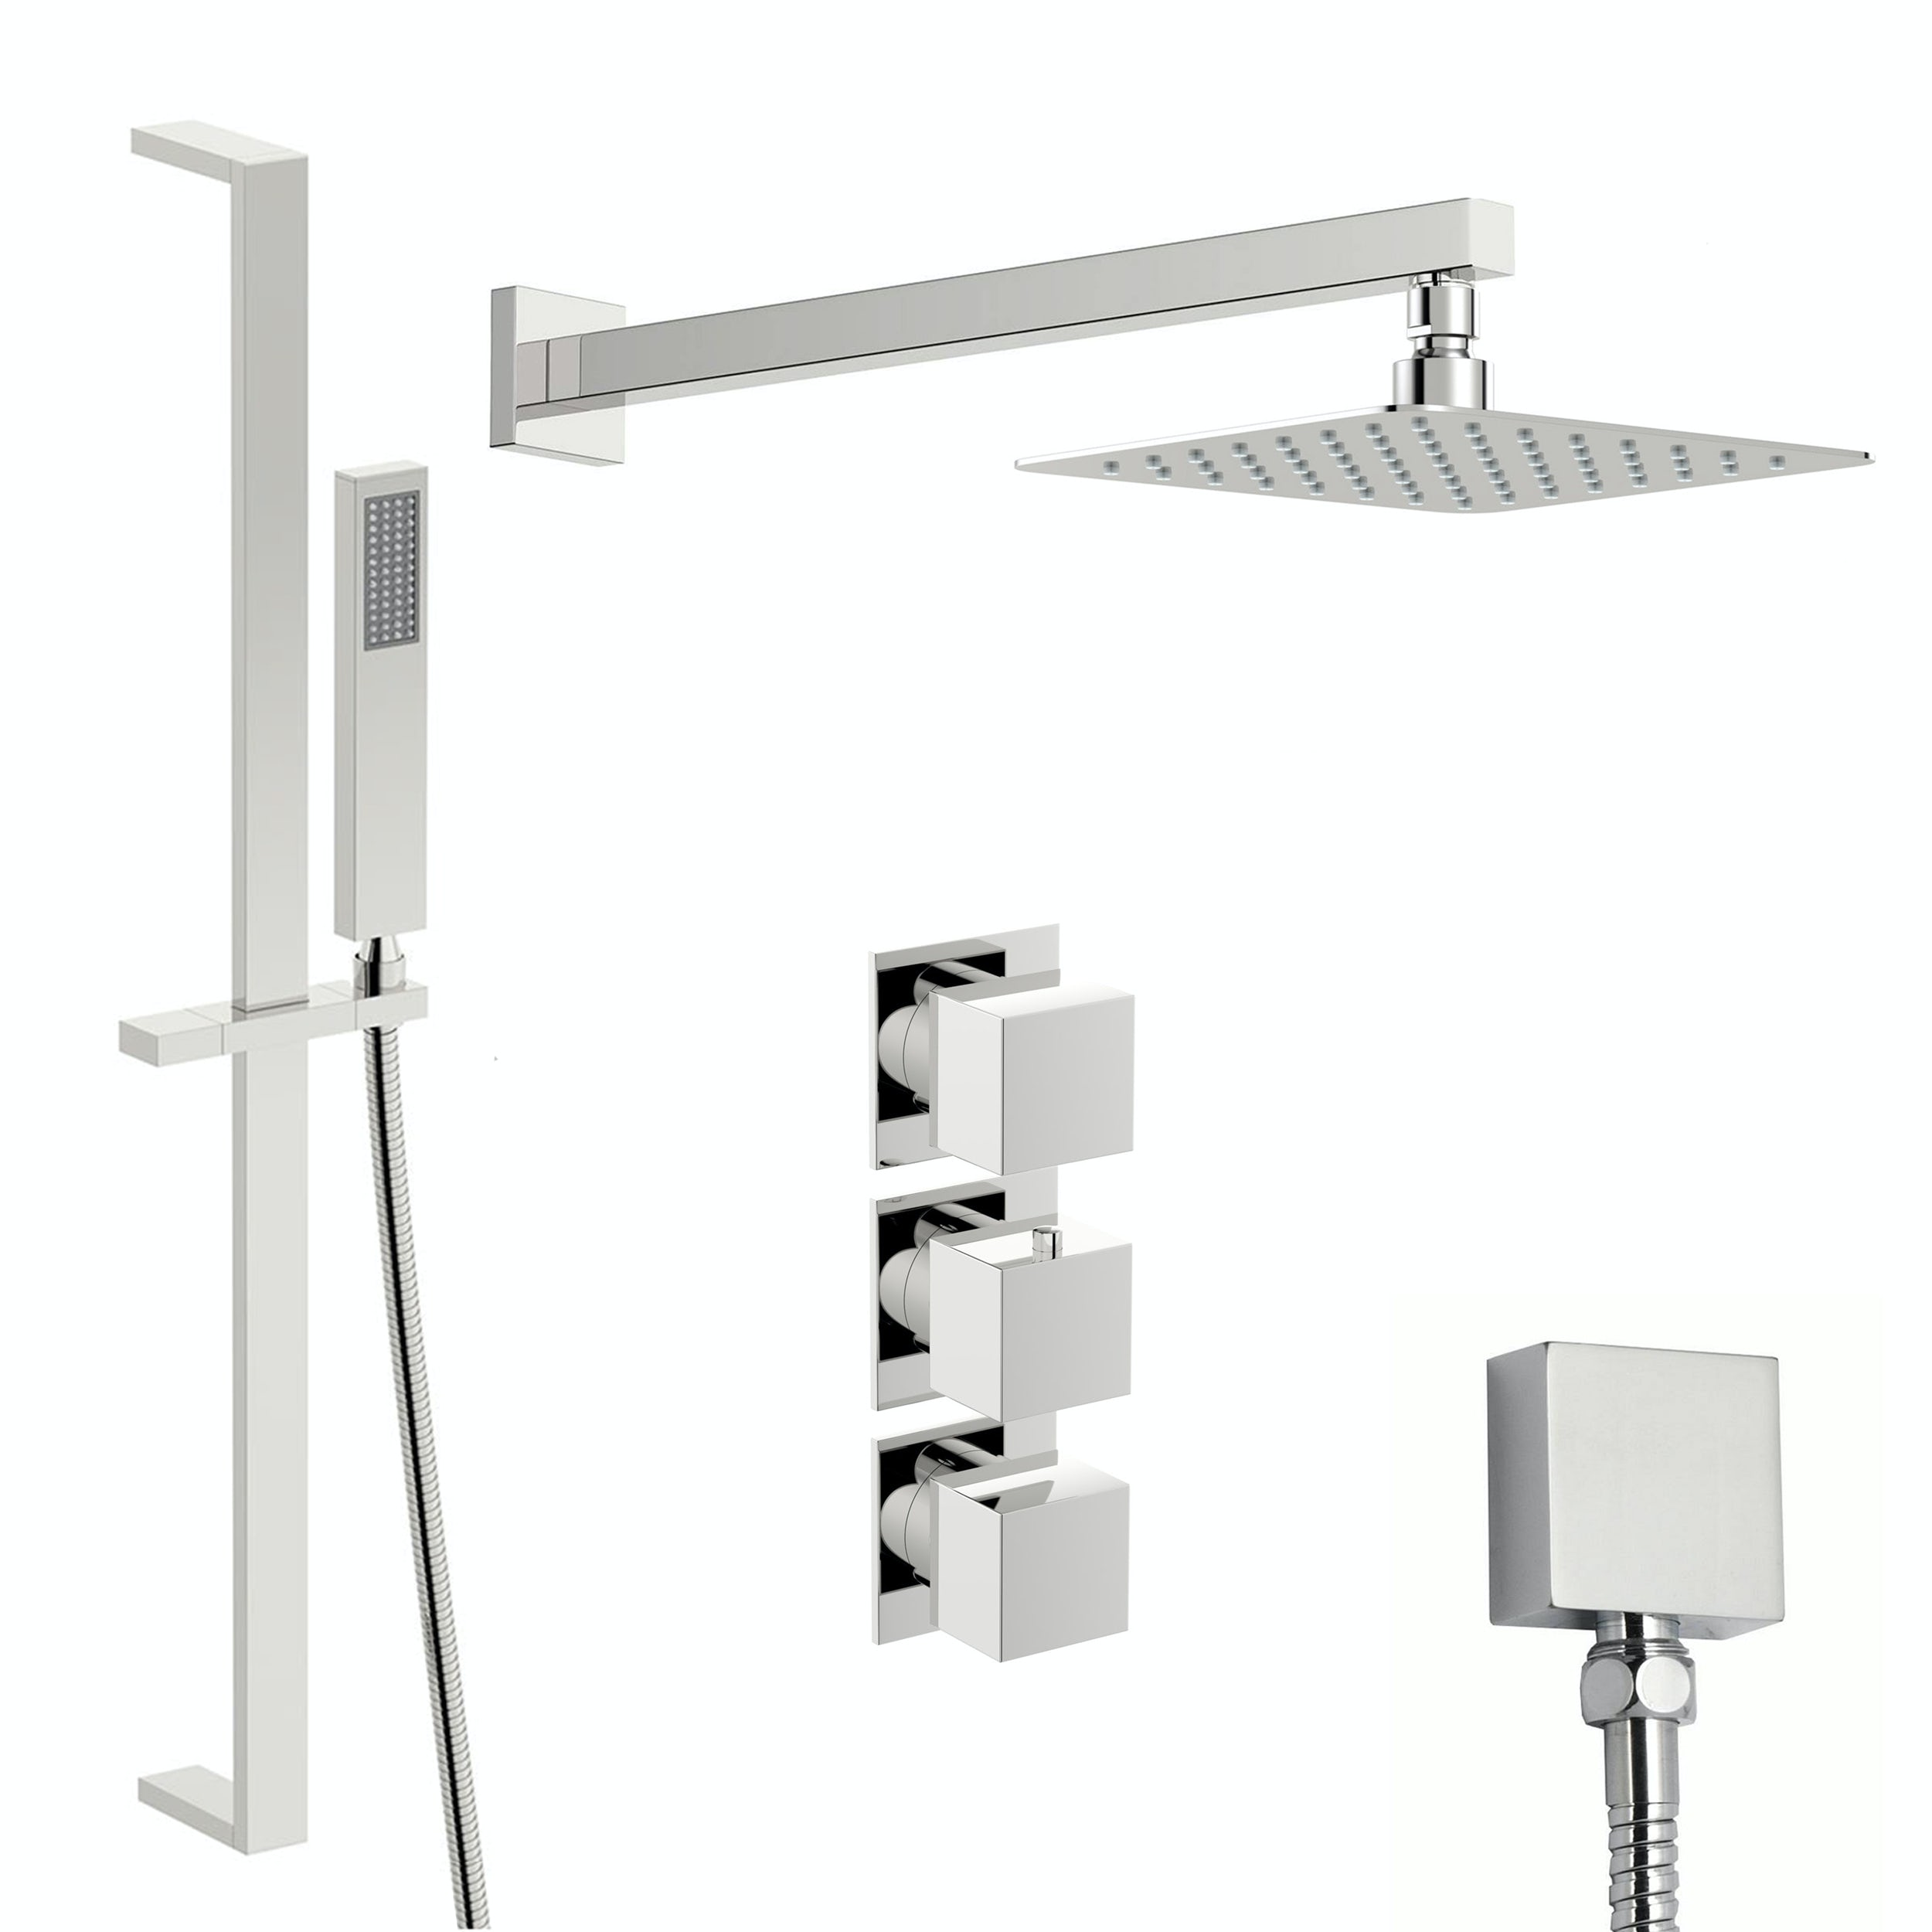 Mode Cooper thermostatic shower valve with slider rail and wall shower set